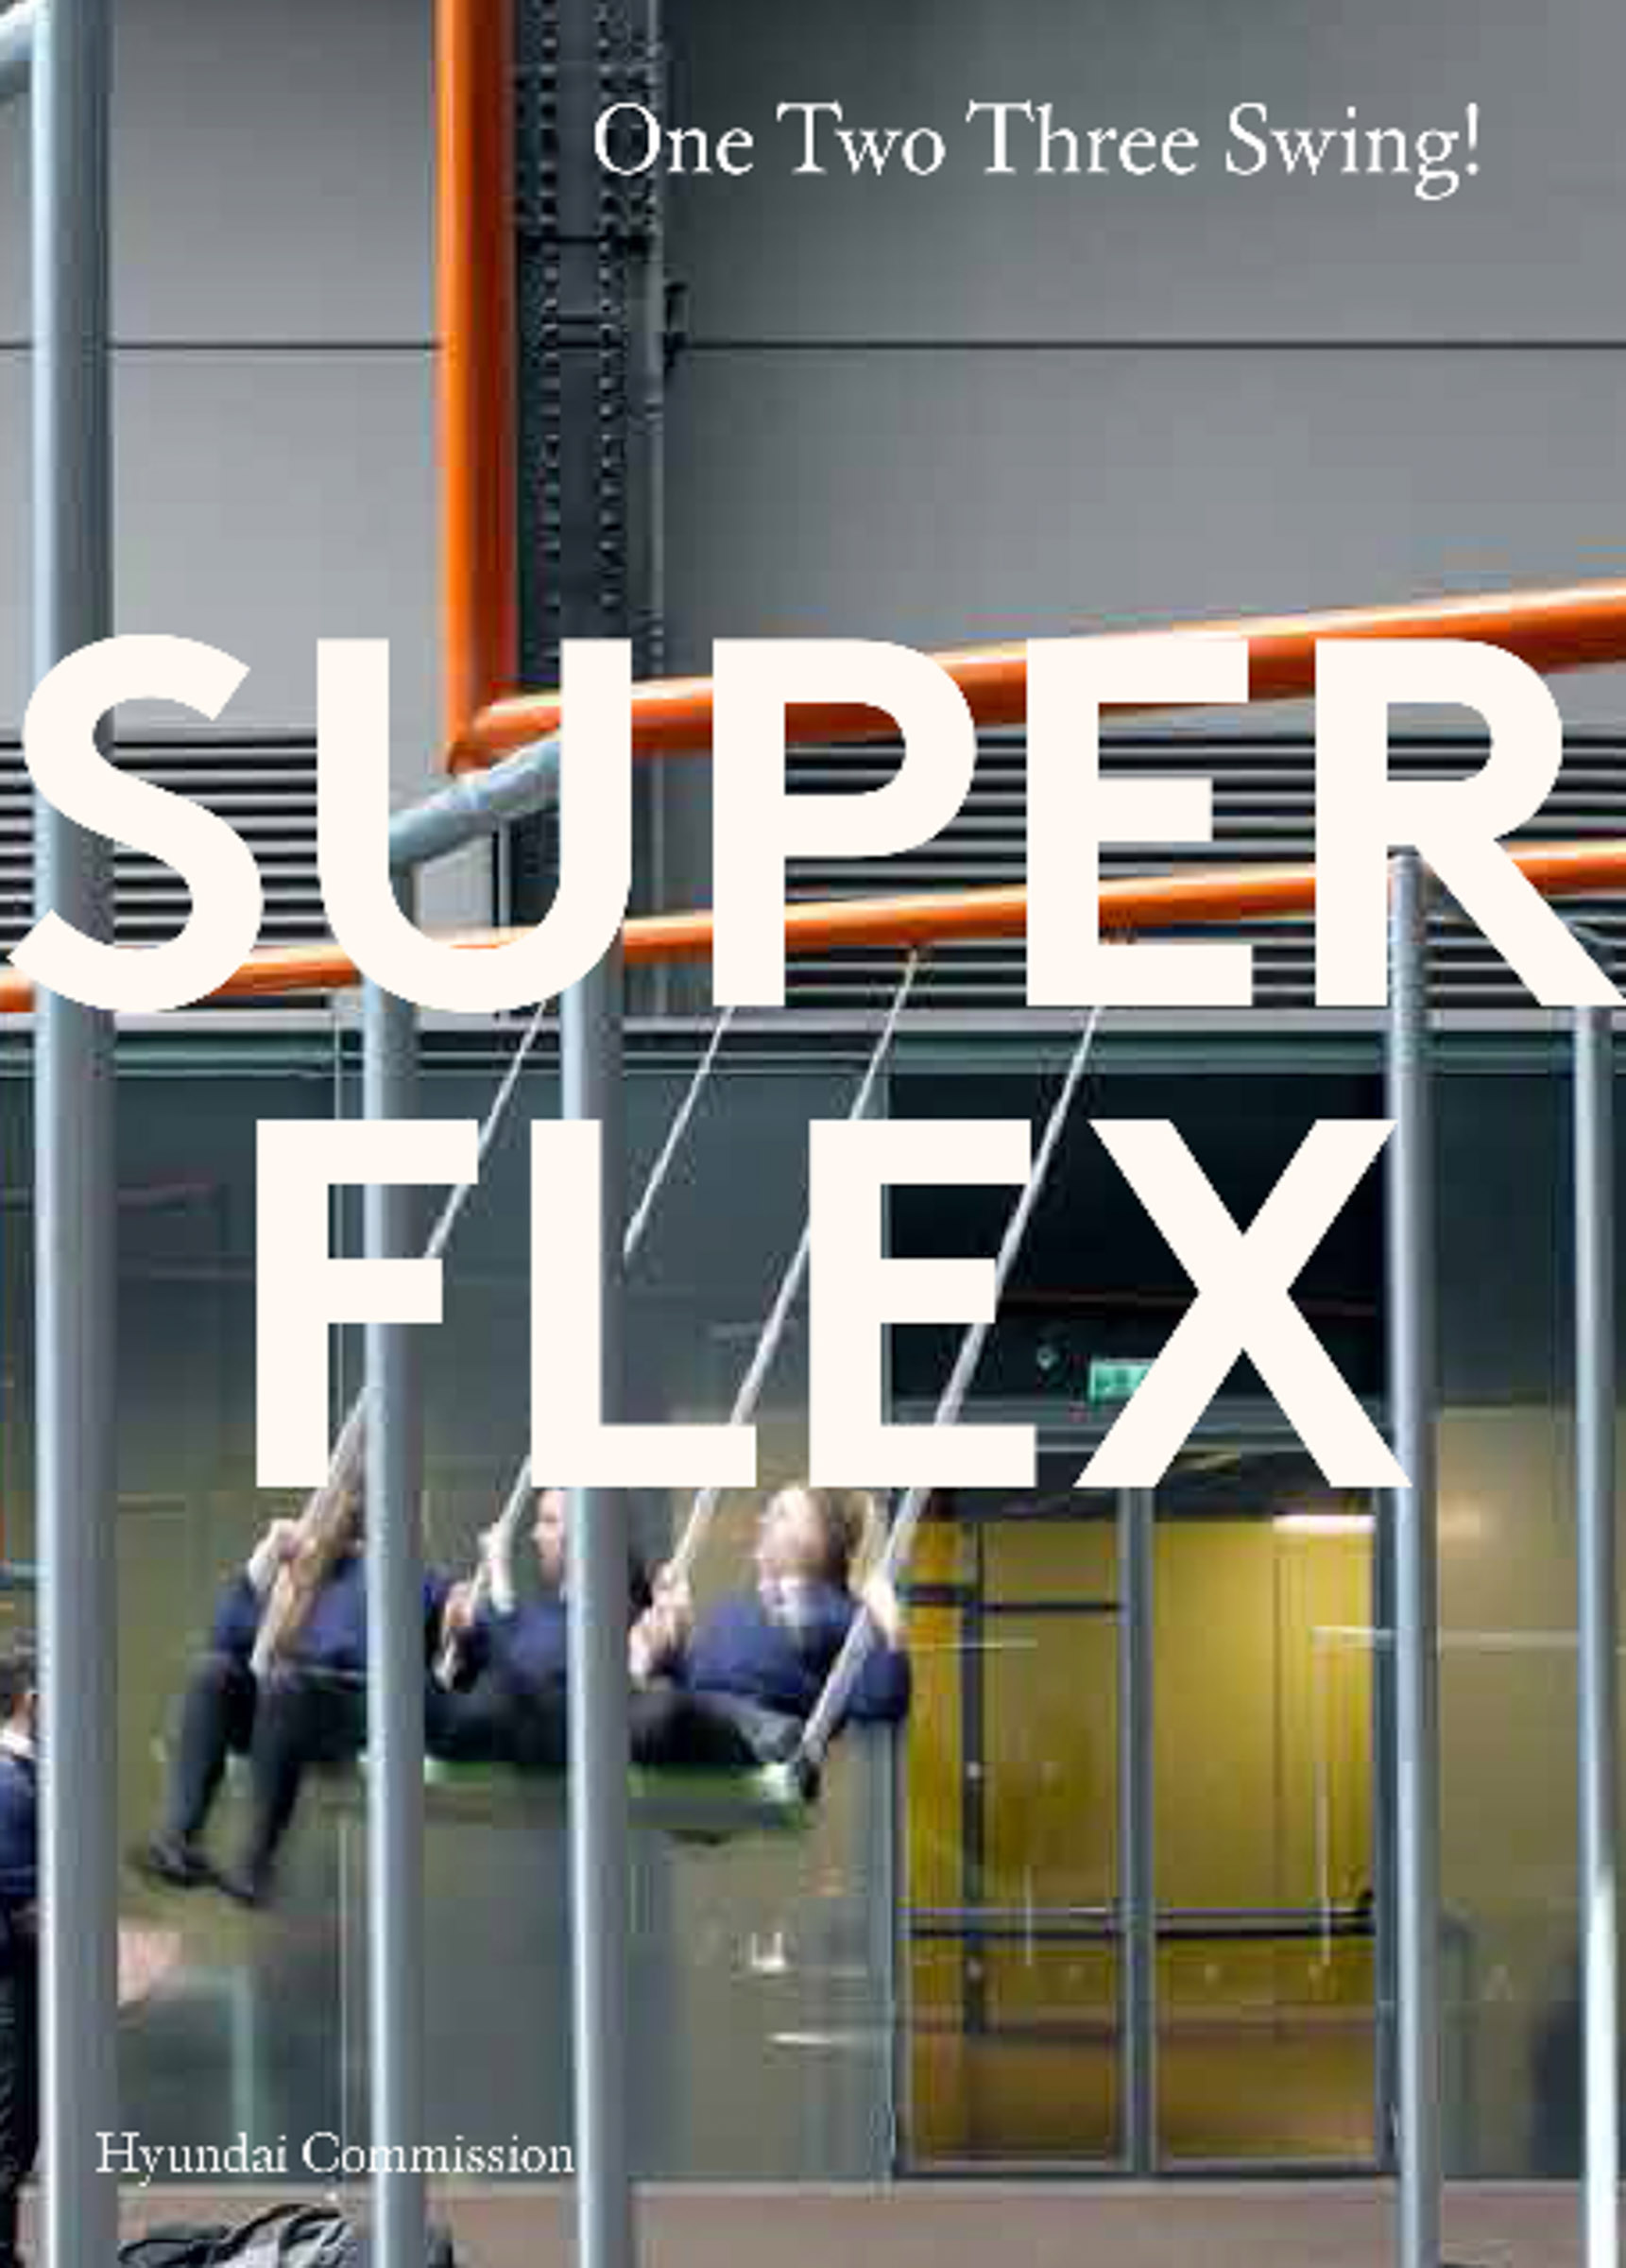 Book no. 1: SUPERFLEX, One Two Three Swing!